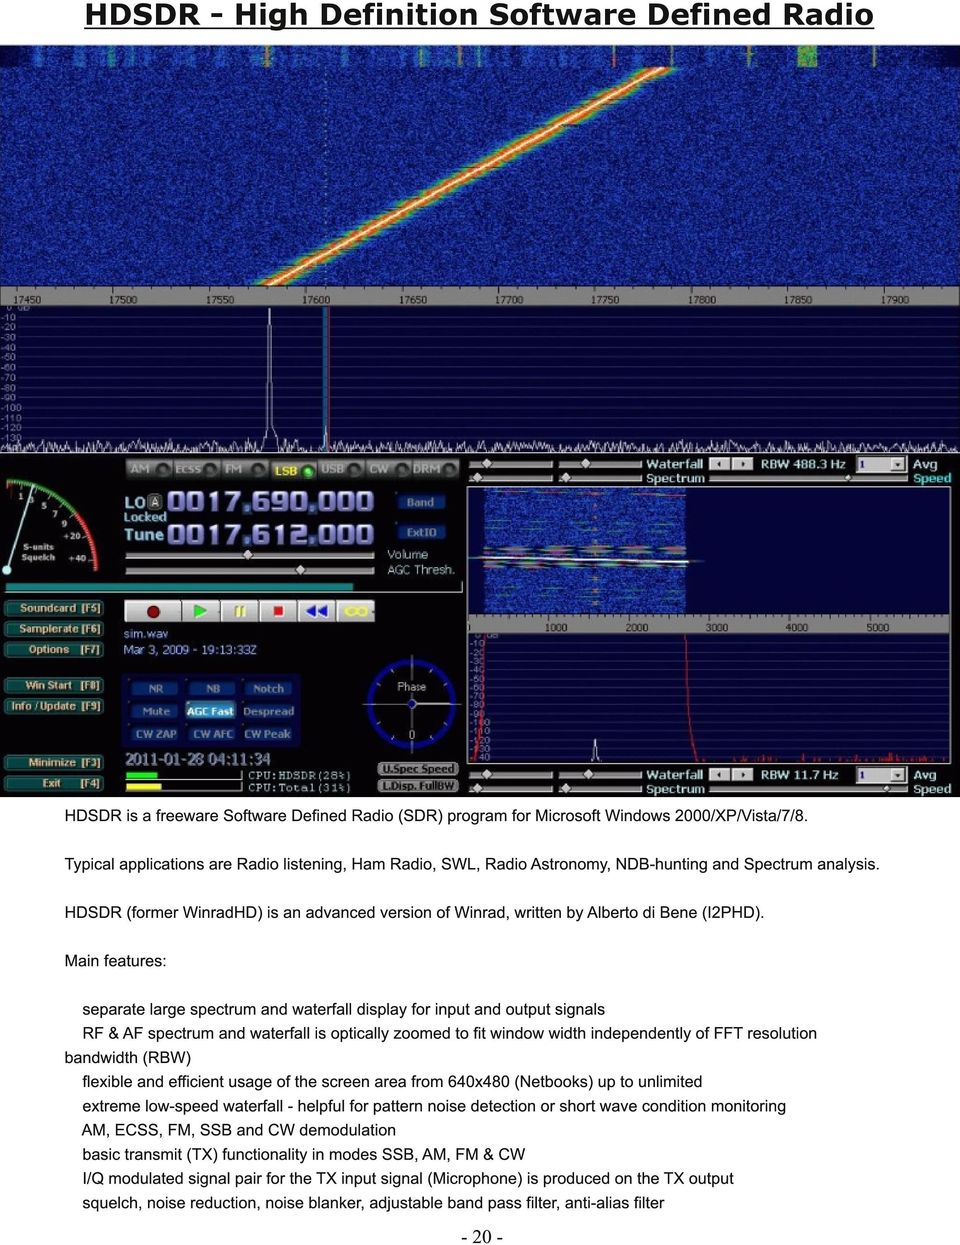 HDSDR (former WinradHD) is an advanced version of Winrad, written by Alberto di Bene (I2PHD).